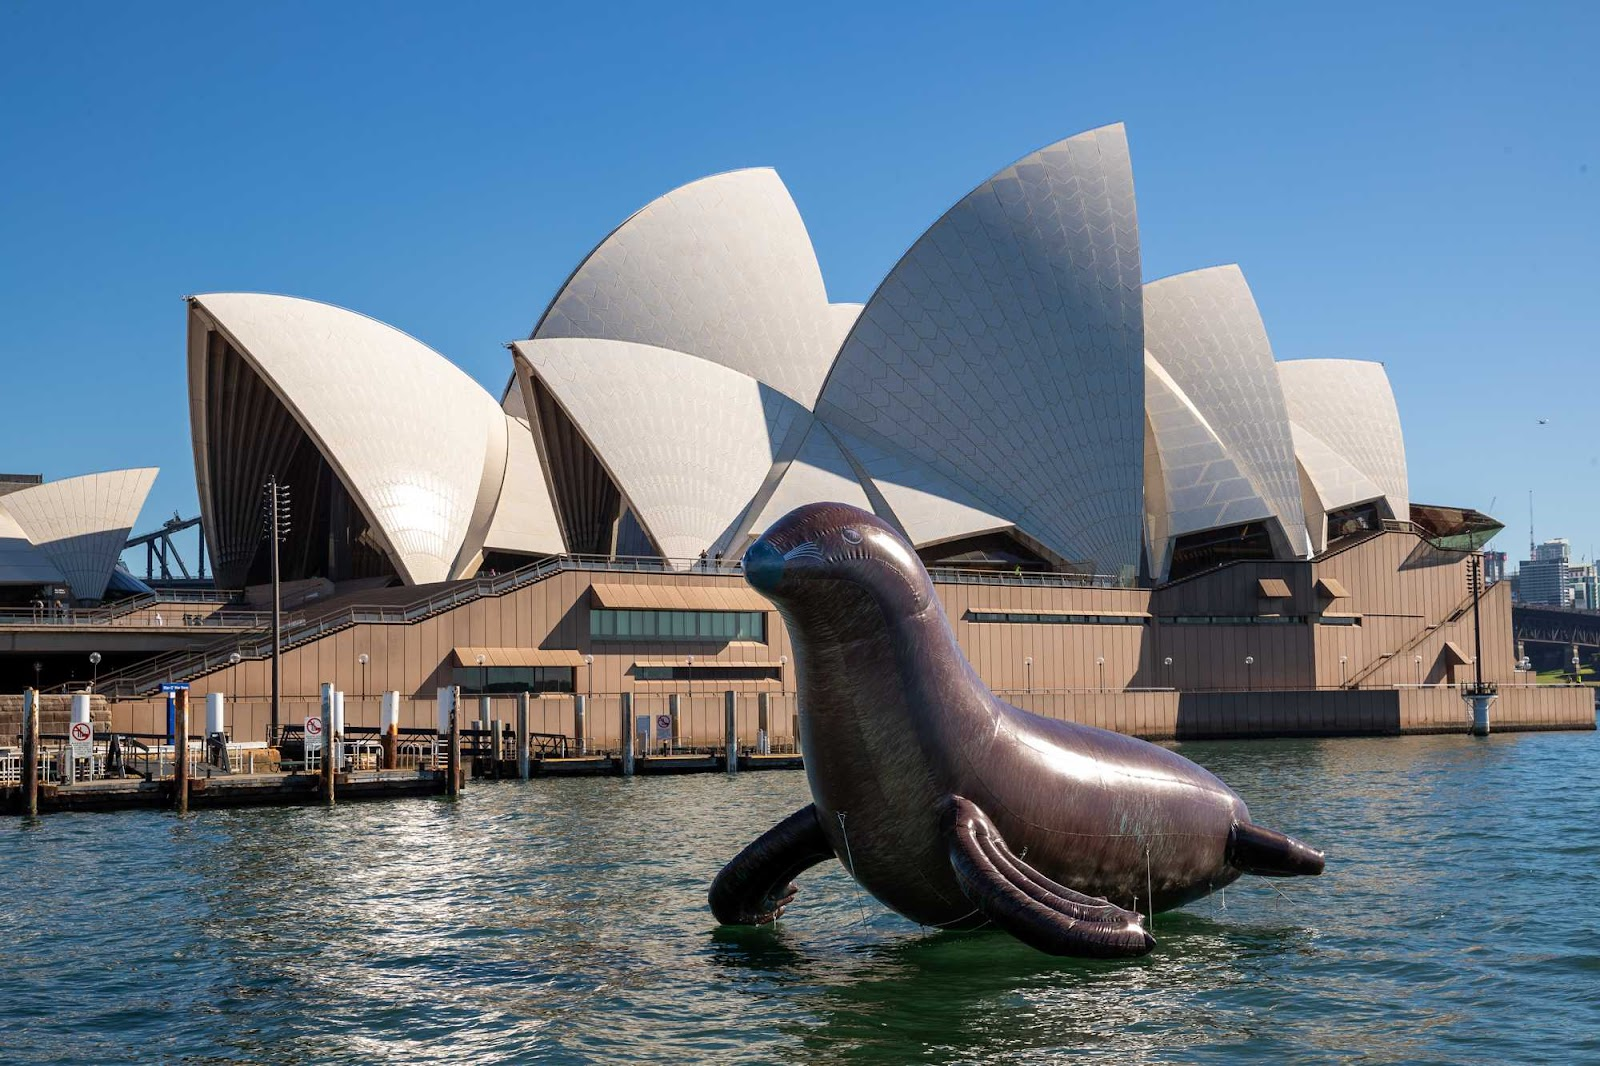 A Giant Inflatable Seal to launch Sydney Opera House's Facebook chatbot